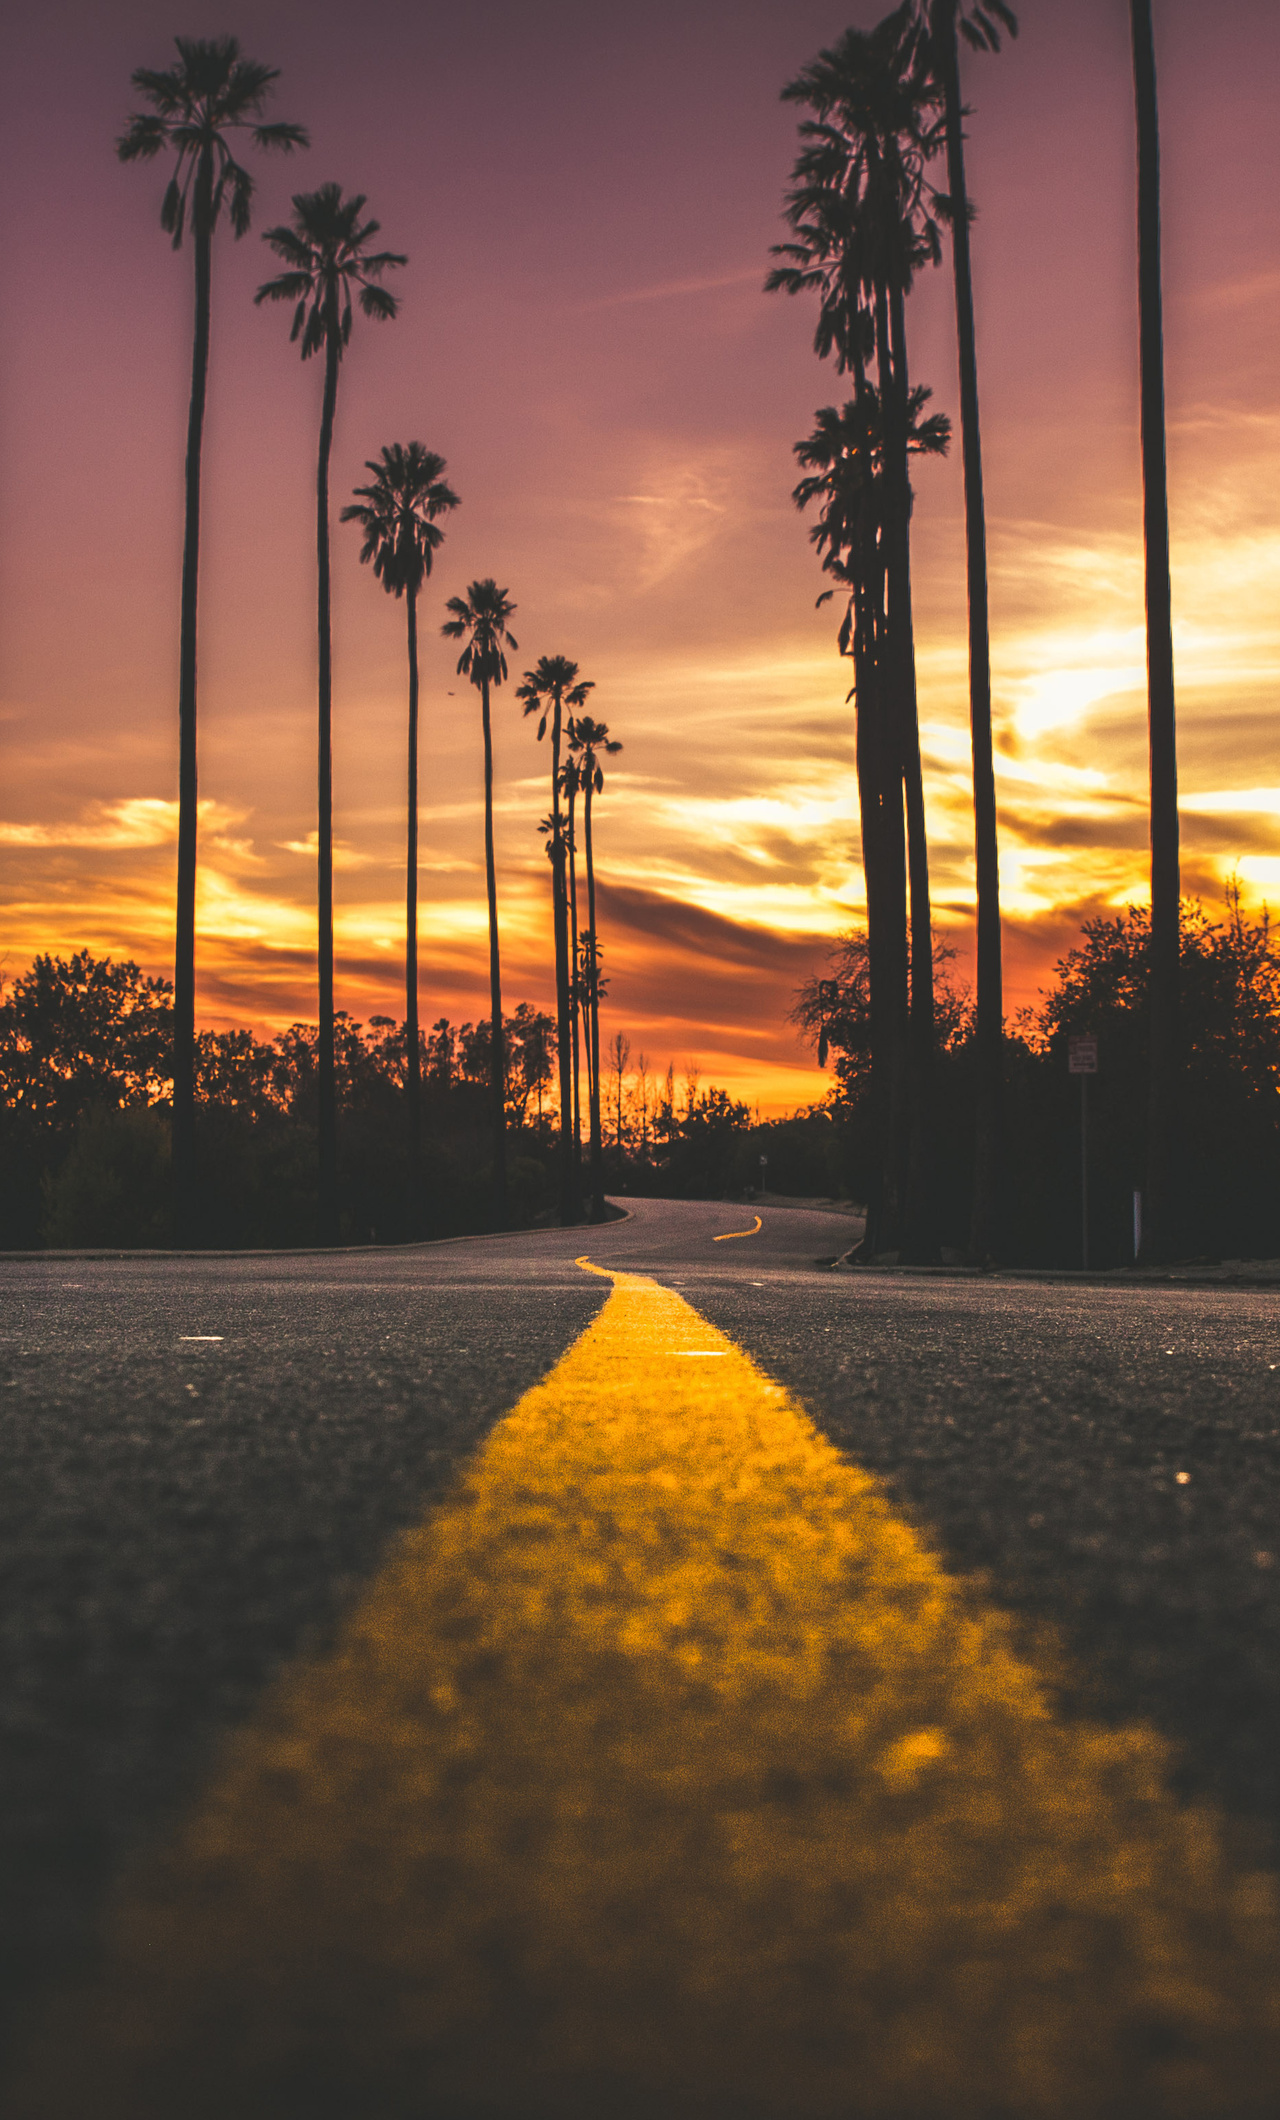 Road In City During Sunset Go